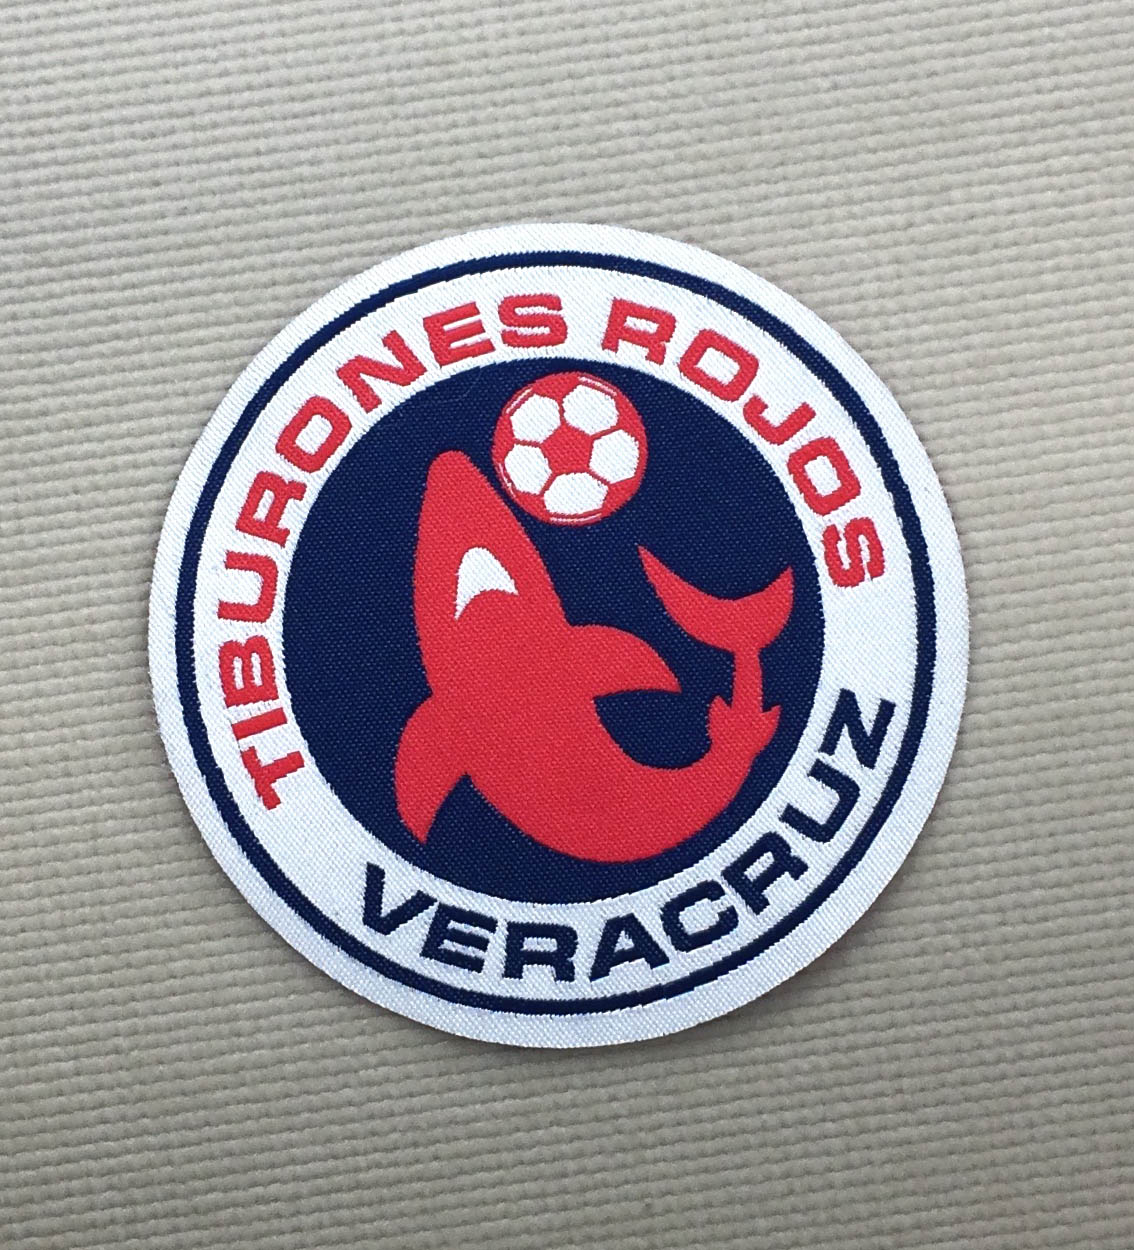 Veracruz Tiburones Patch